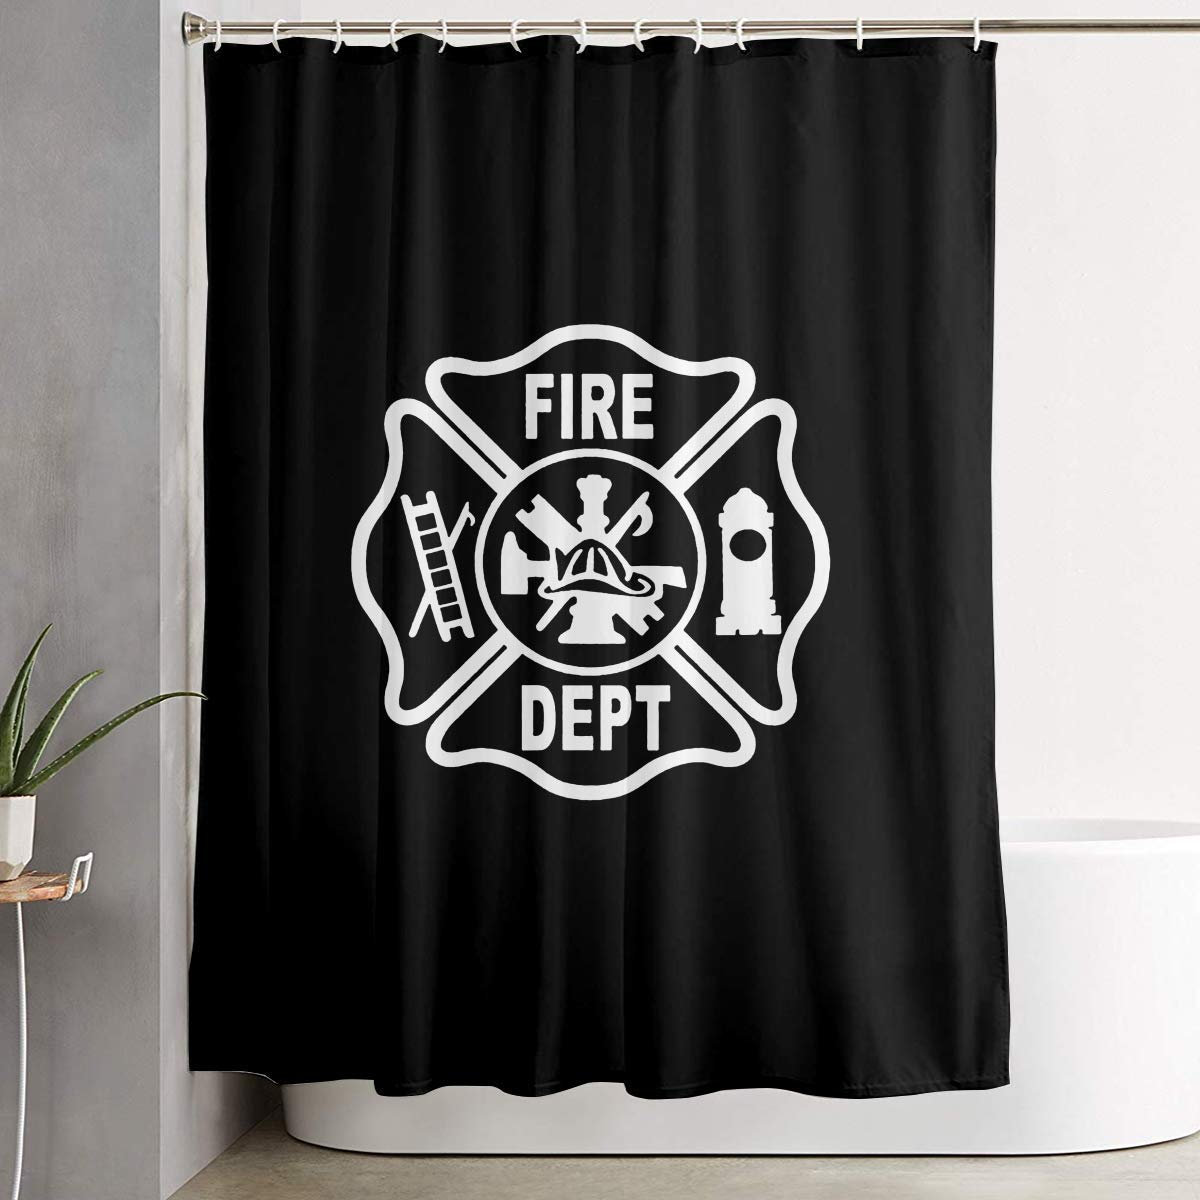 YING Fire Department Logo Firefighter Washroom Waterproof Fabric Polyester Shower Curtain Bath Curtain Decoration Home Decor Sets with Plastic Hooks 60x72 Inches